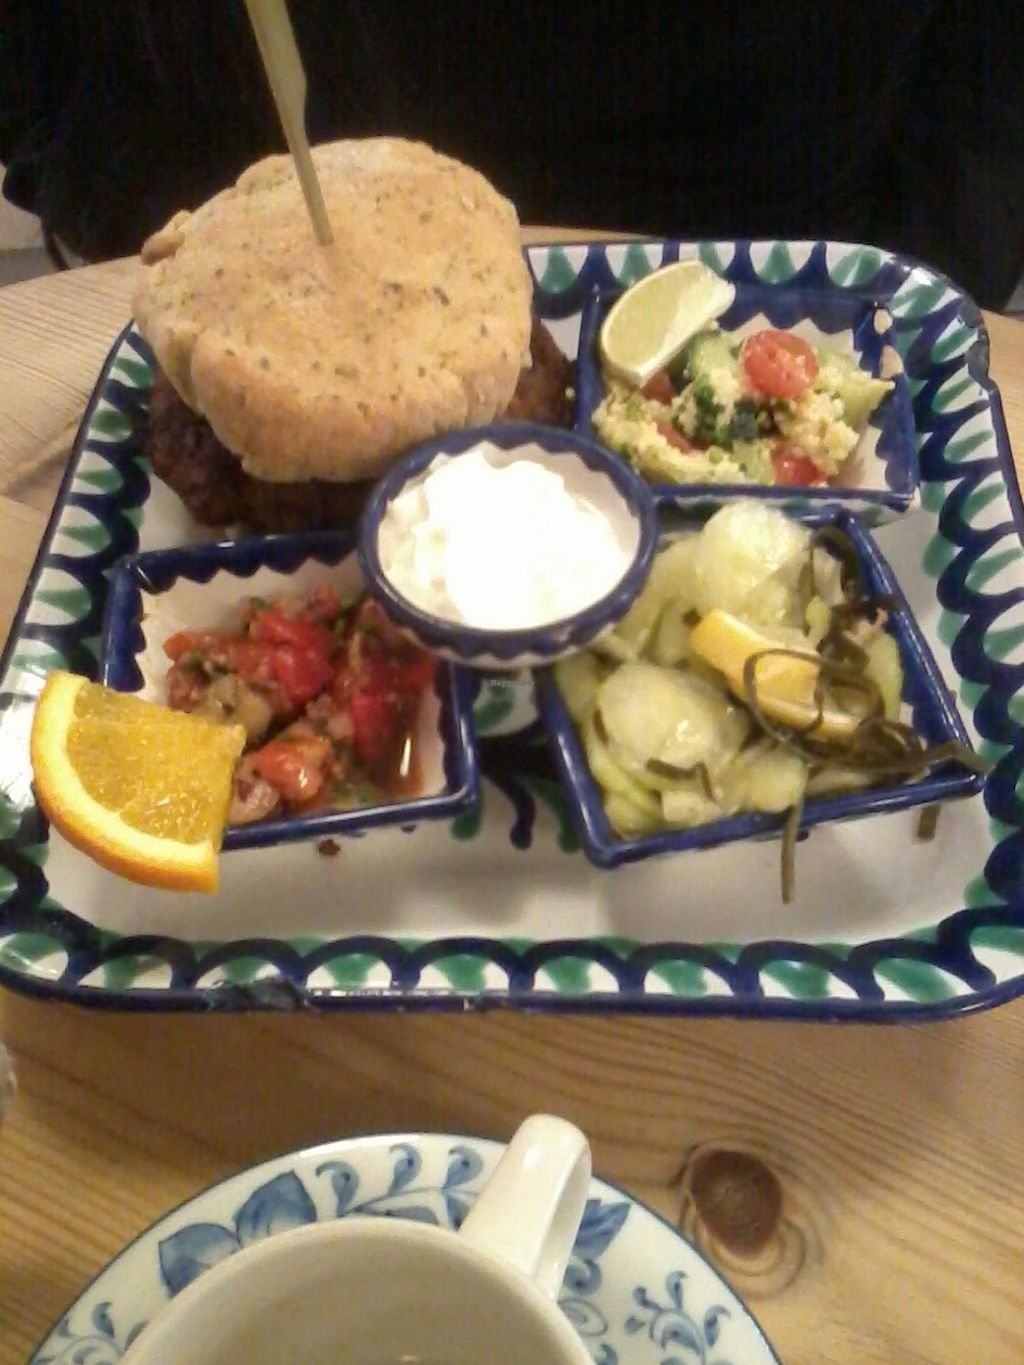 """Photo of El Piano  by <a href=""""/members/profile/deadpledge"""">deadpledge</a> <br/>Bob's Best Burger and dips <br/> December 6, 2015  - <a href='/contact/abuse/image/780/127404'>Report</a>"""